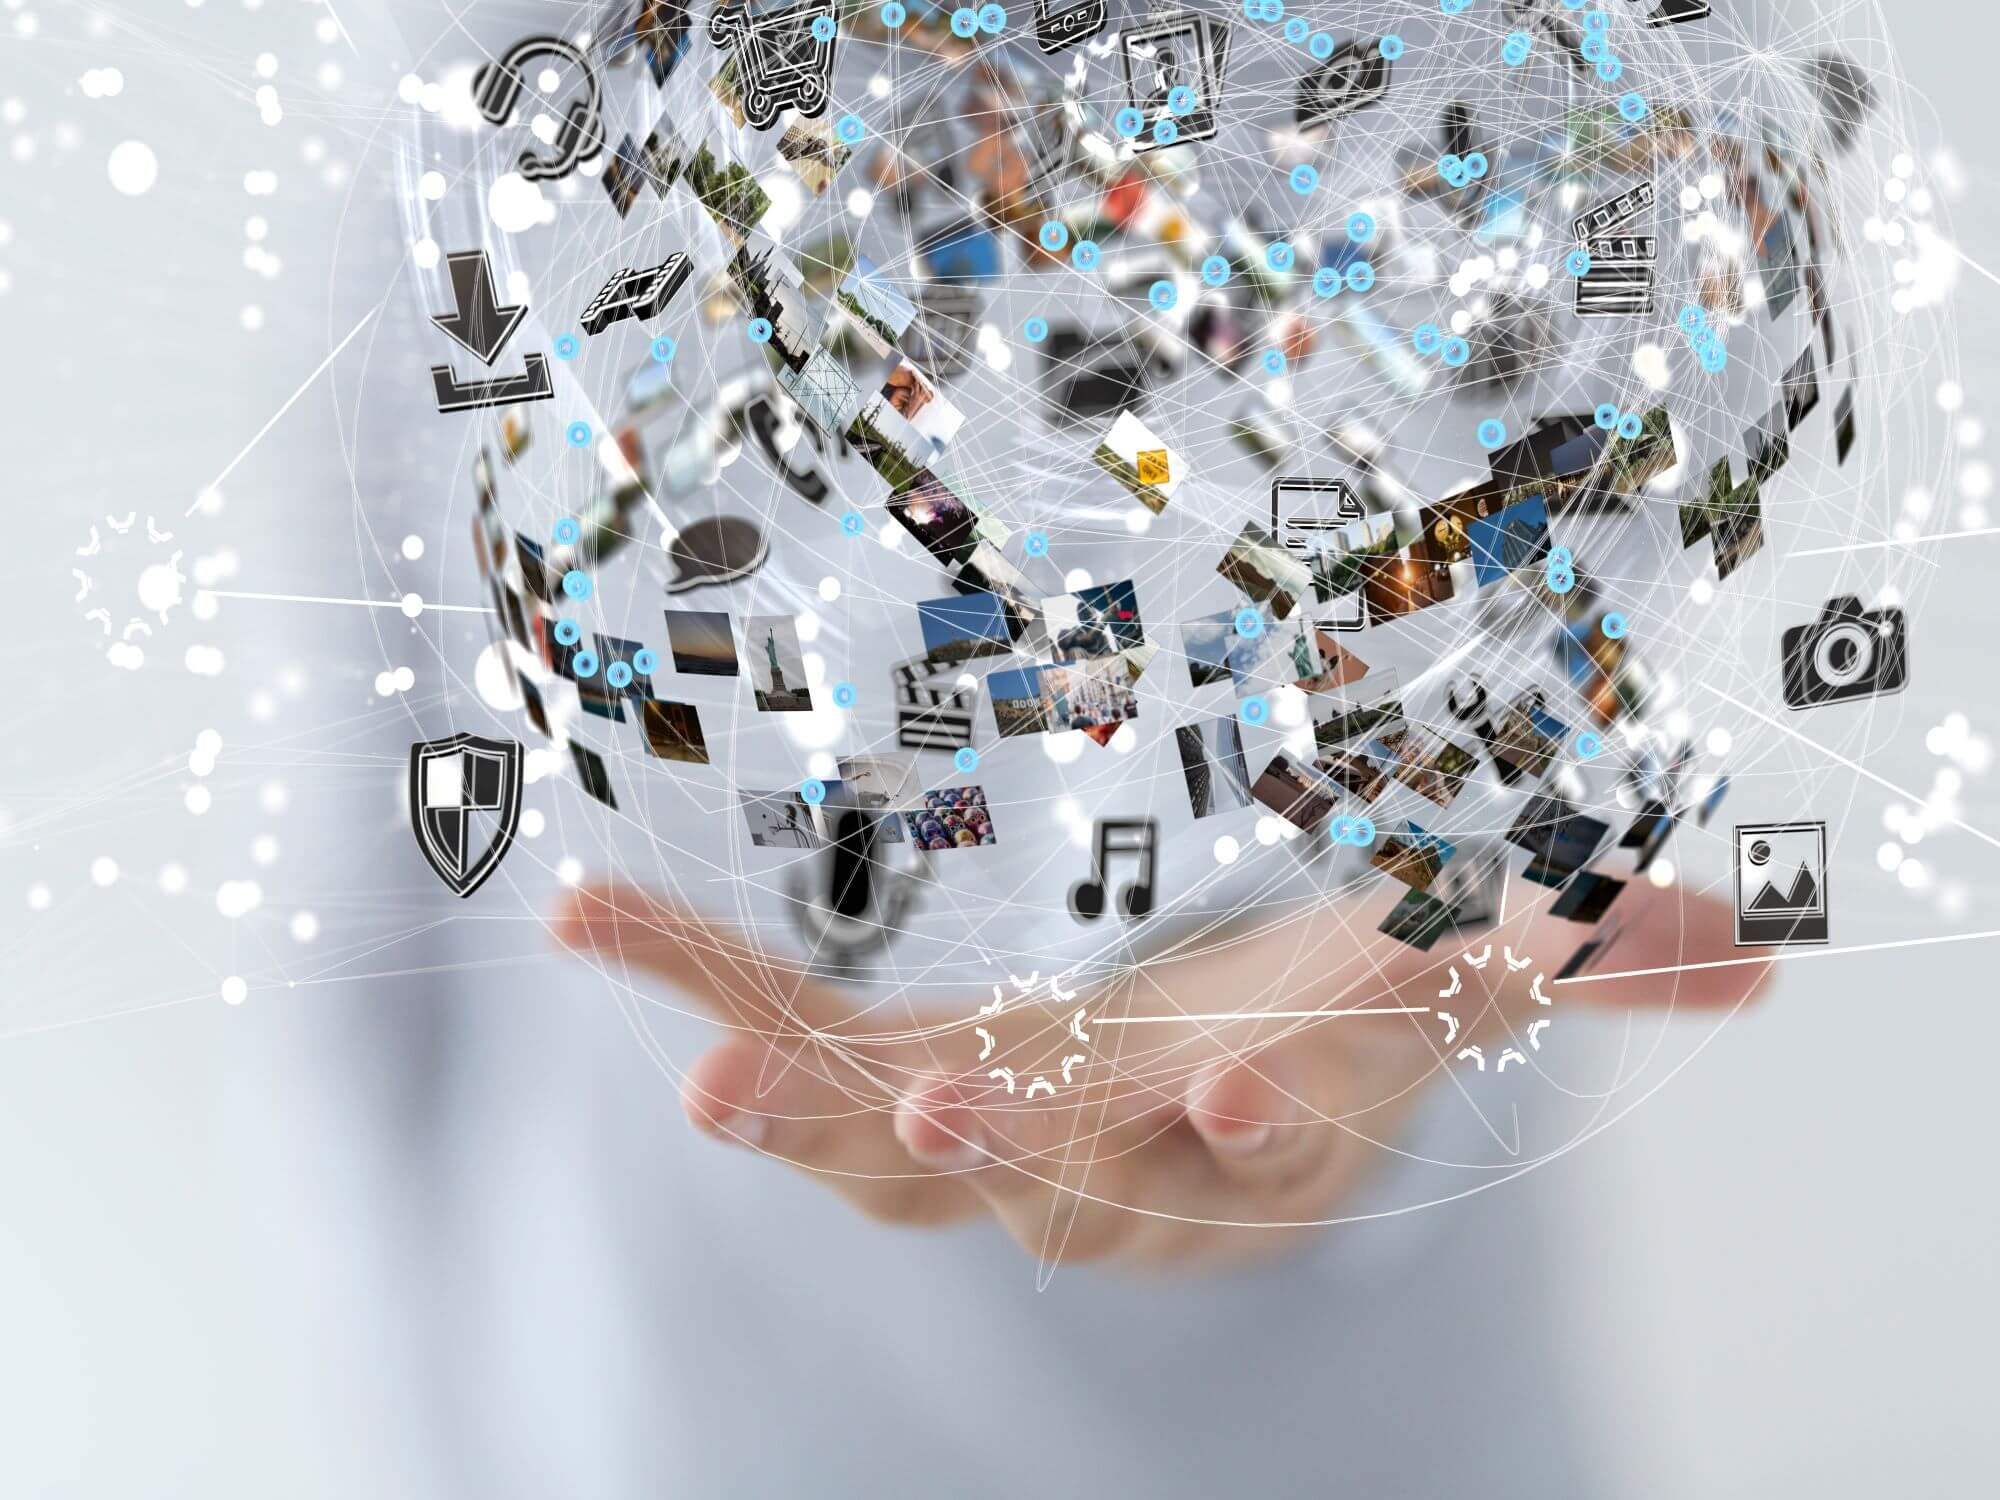 Sphere of technology in a hand